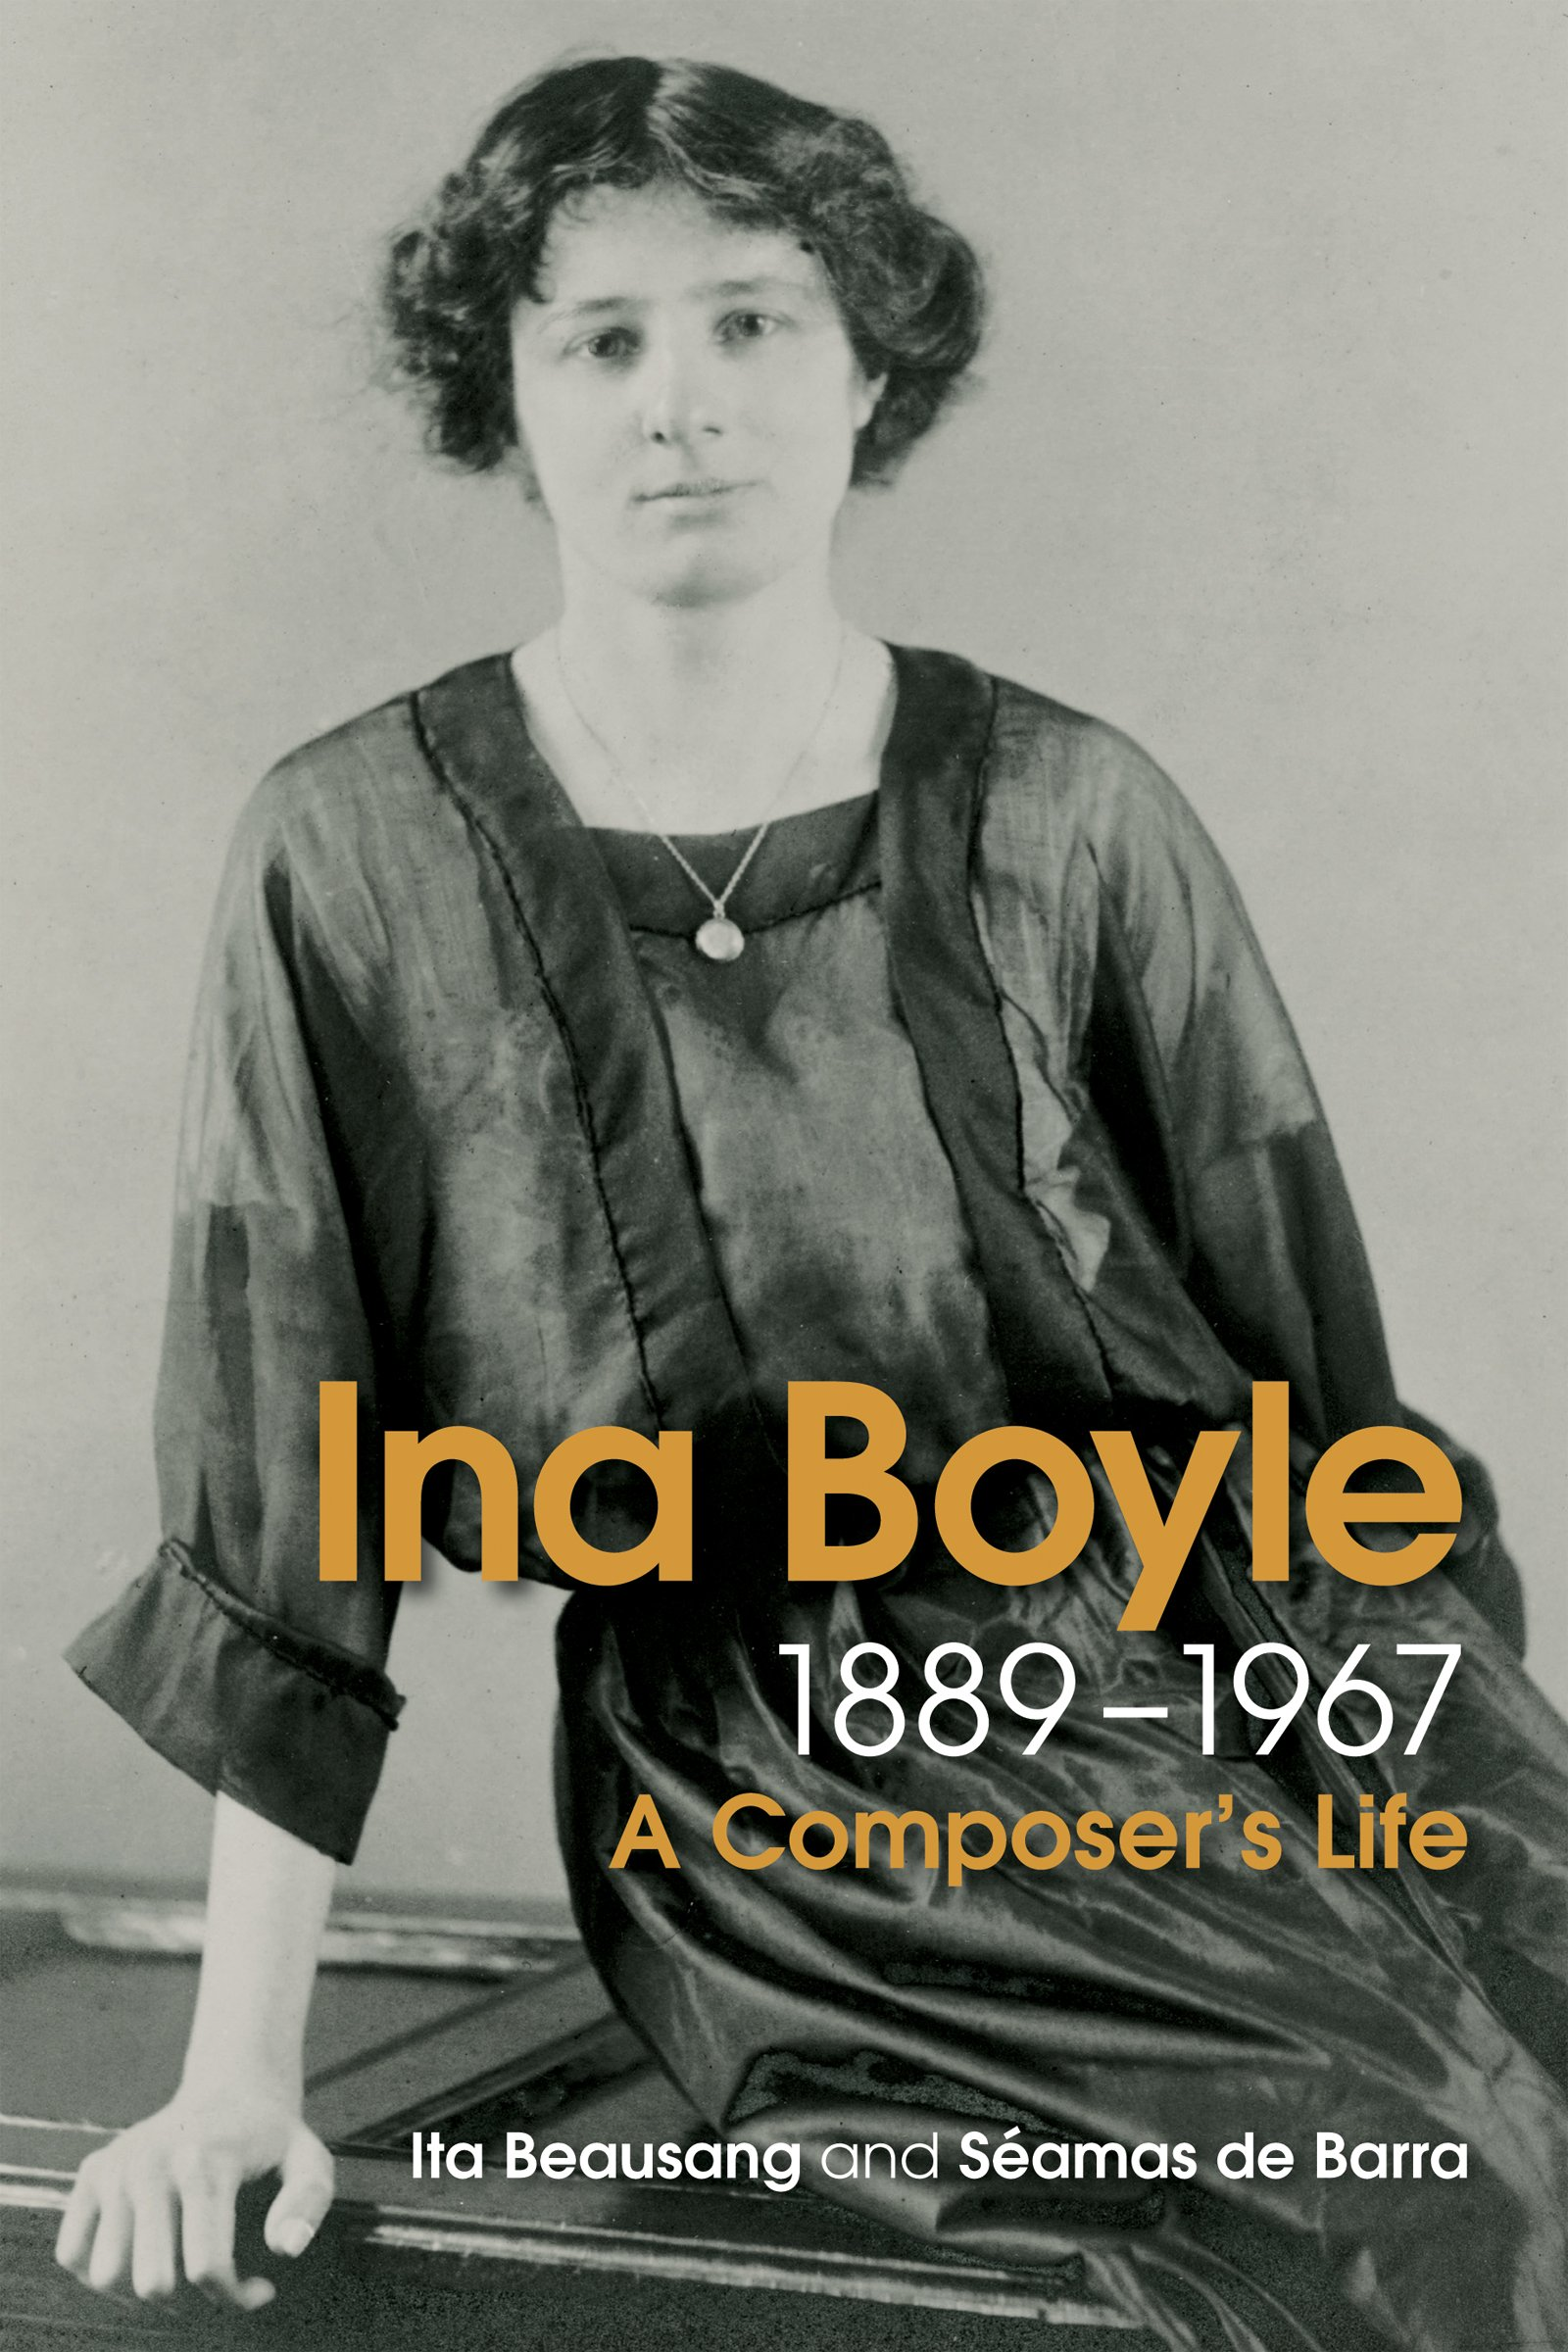 the-life-and-music-of-ina-boyle